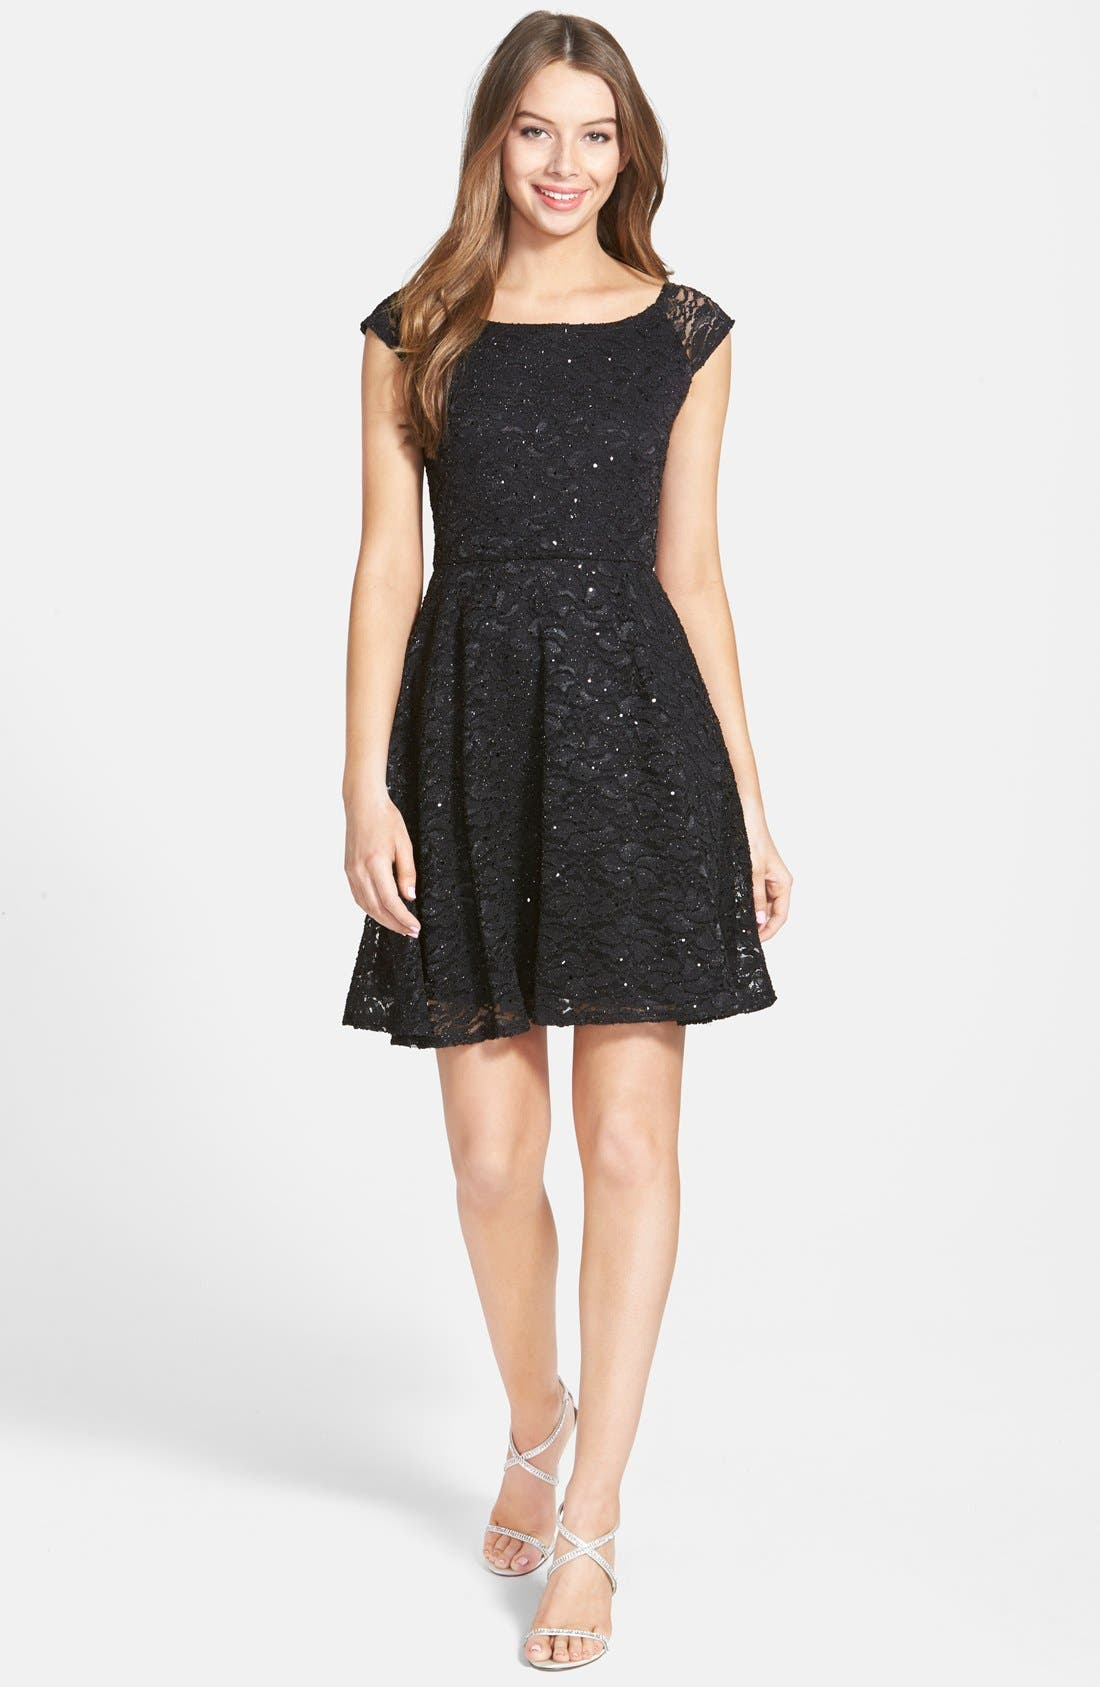 Main Image - Jump Apparel Glitter Lace Cap Sleeve Skater Dress